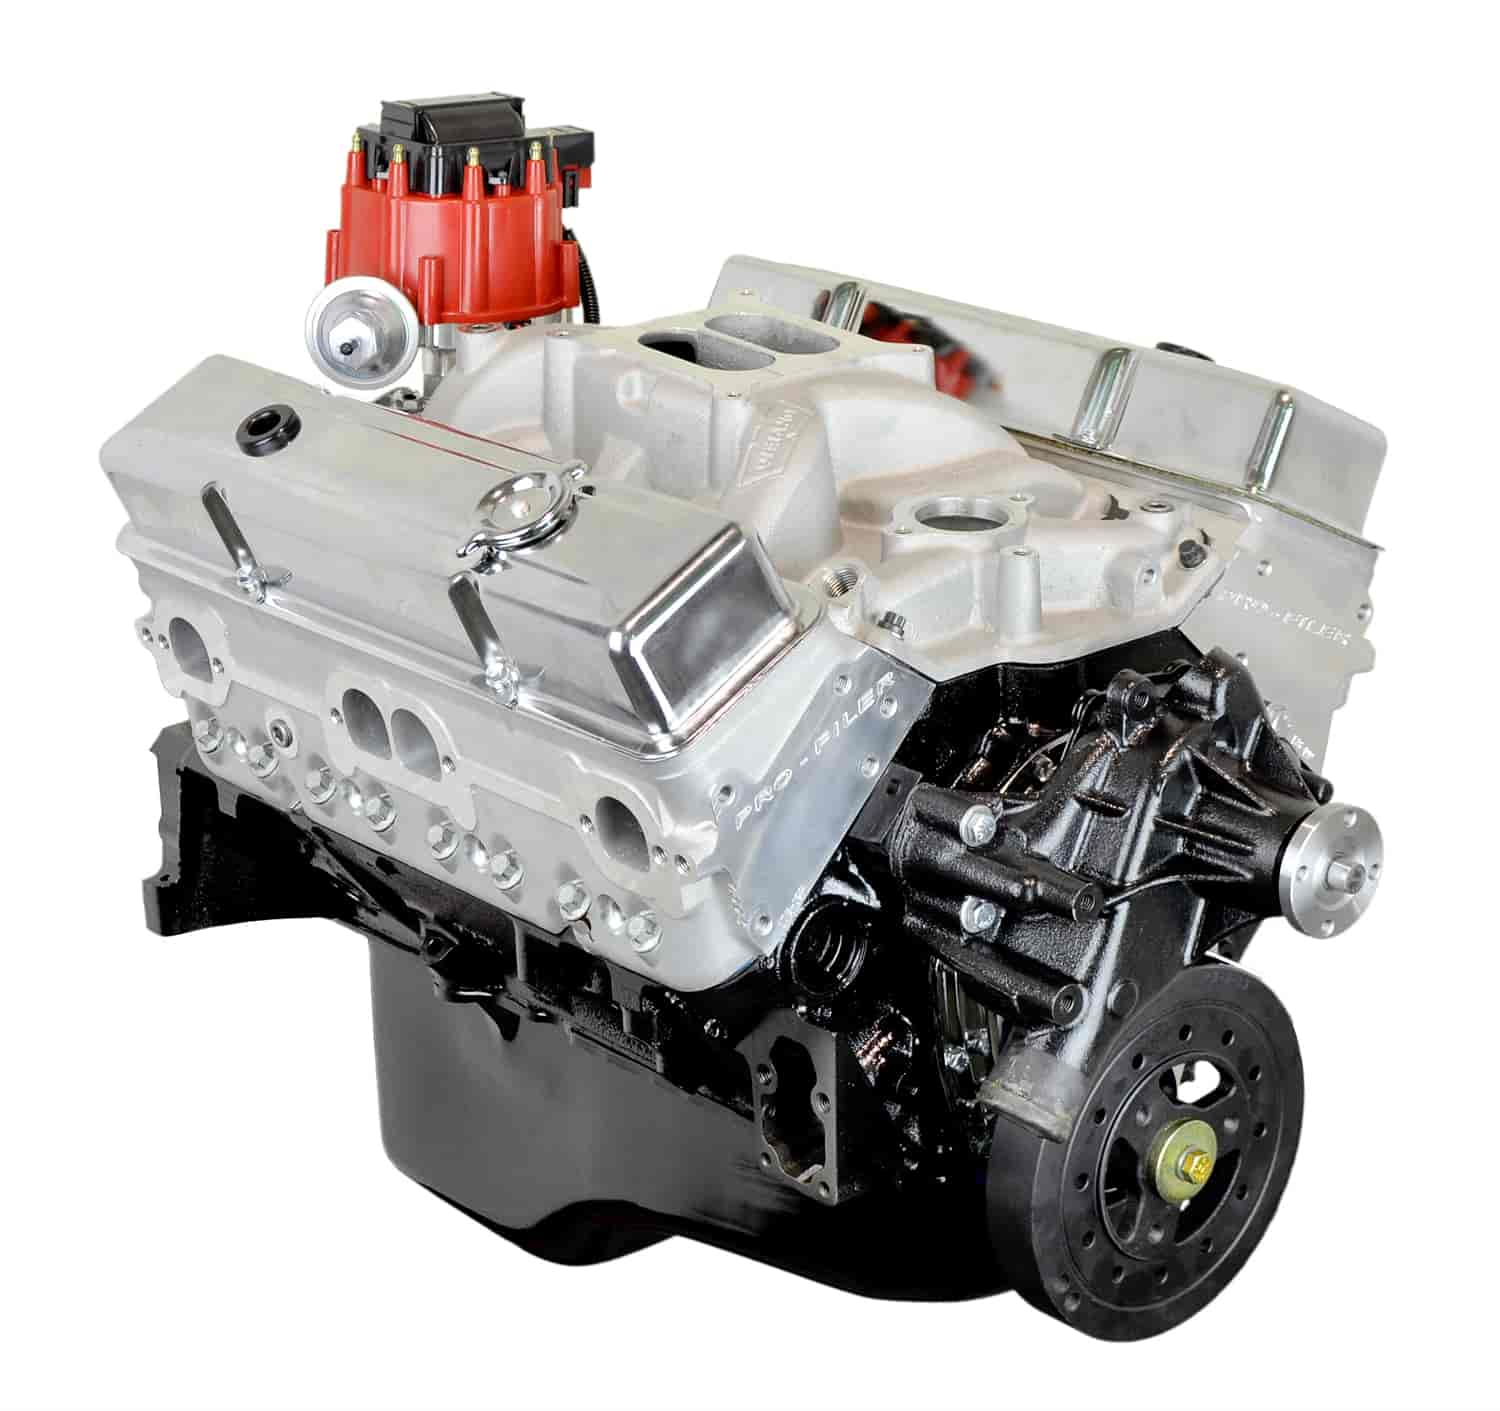 ATK Engines High Performance Crate Engine Small Block Chevy 350ci / 365HP /  400TQ